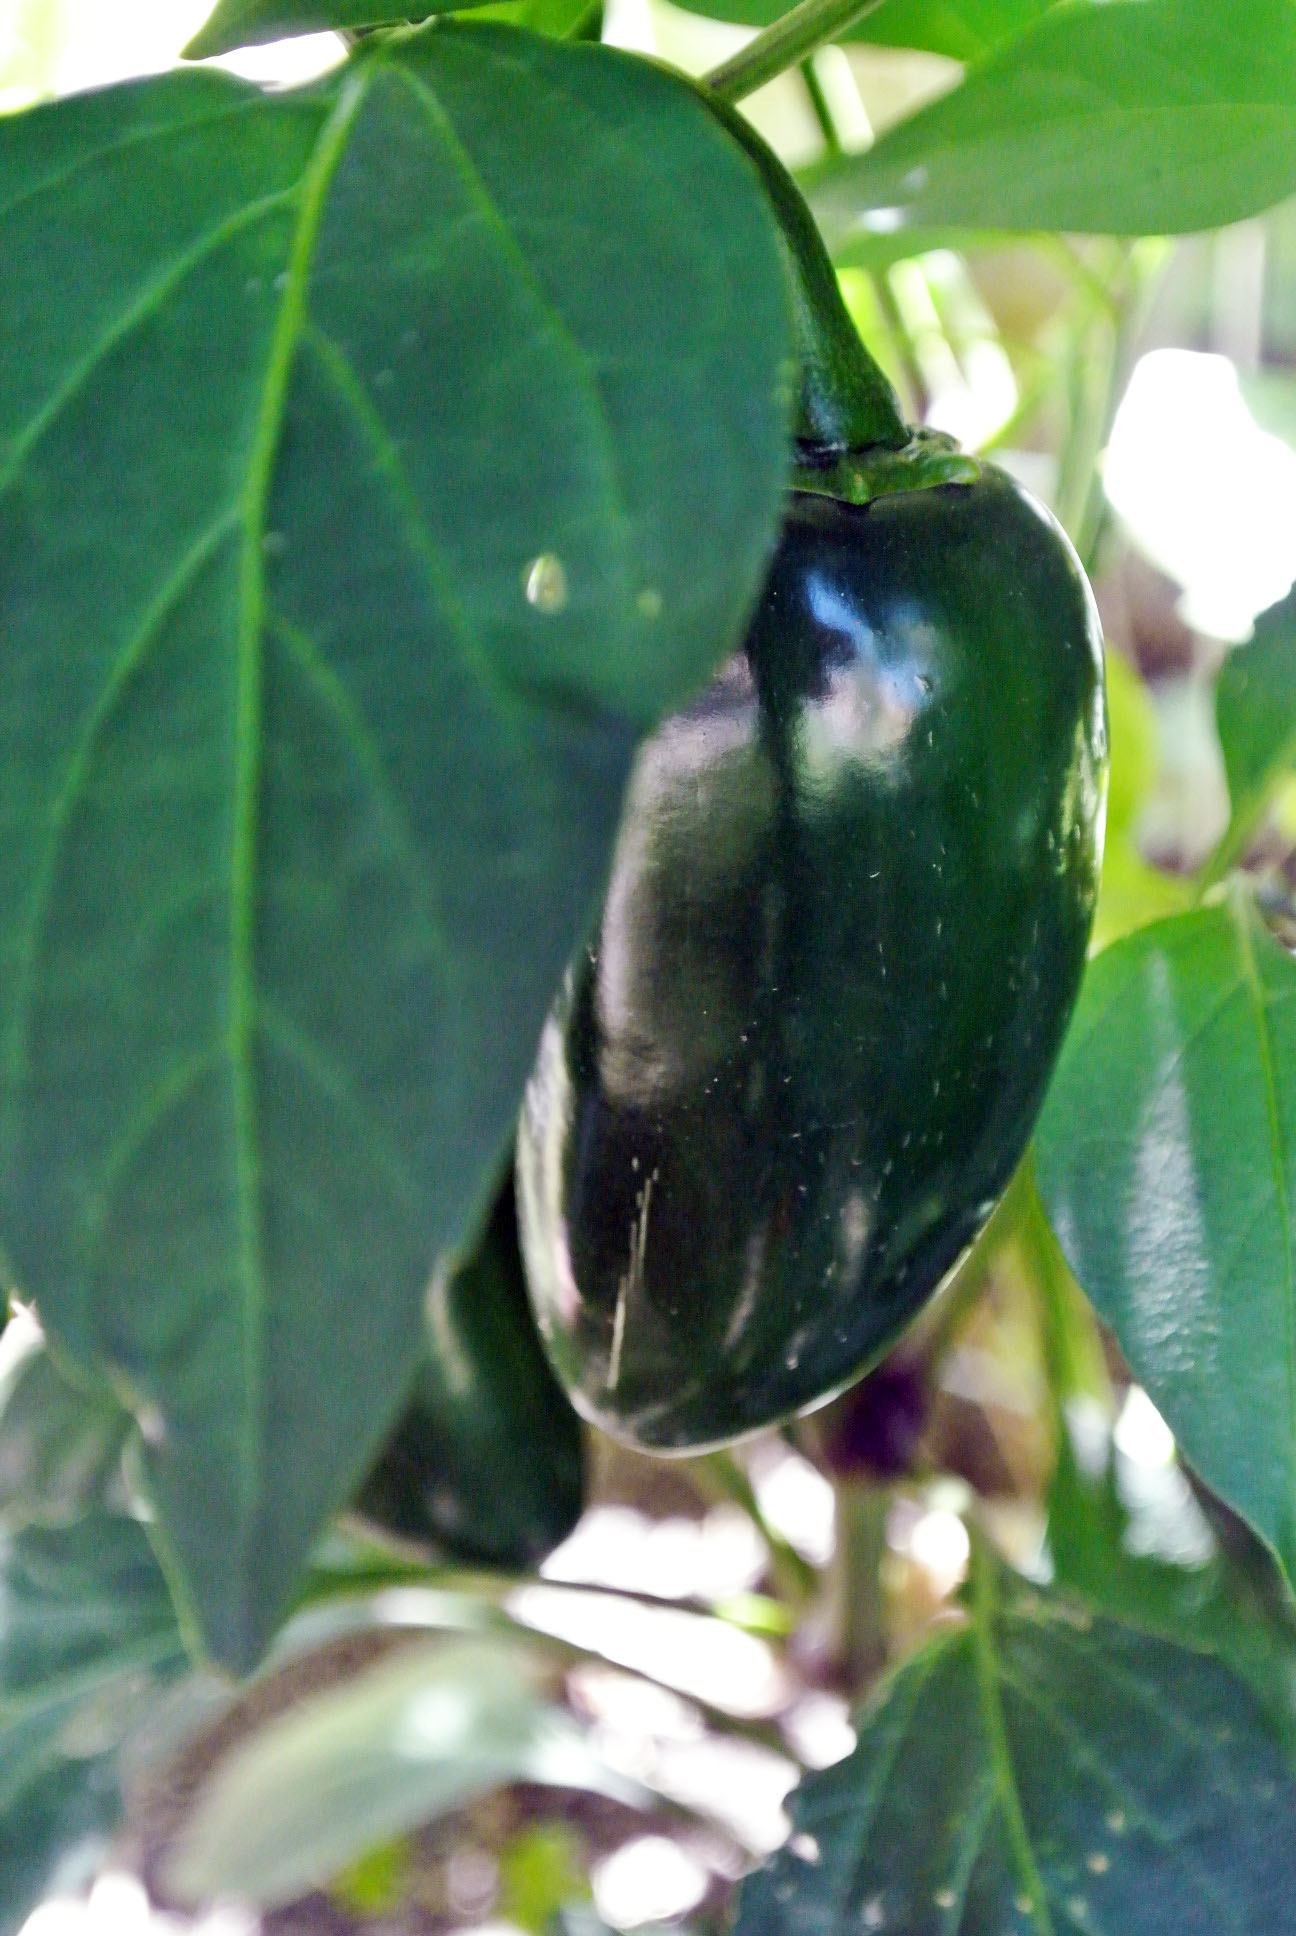 Dark Green Jalapeno with Corking